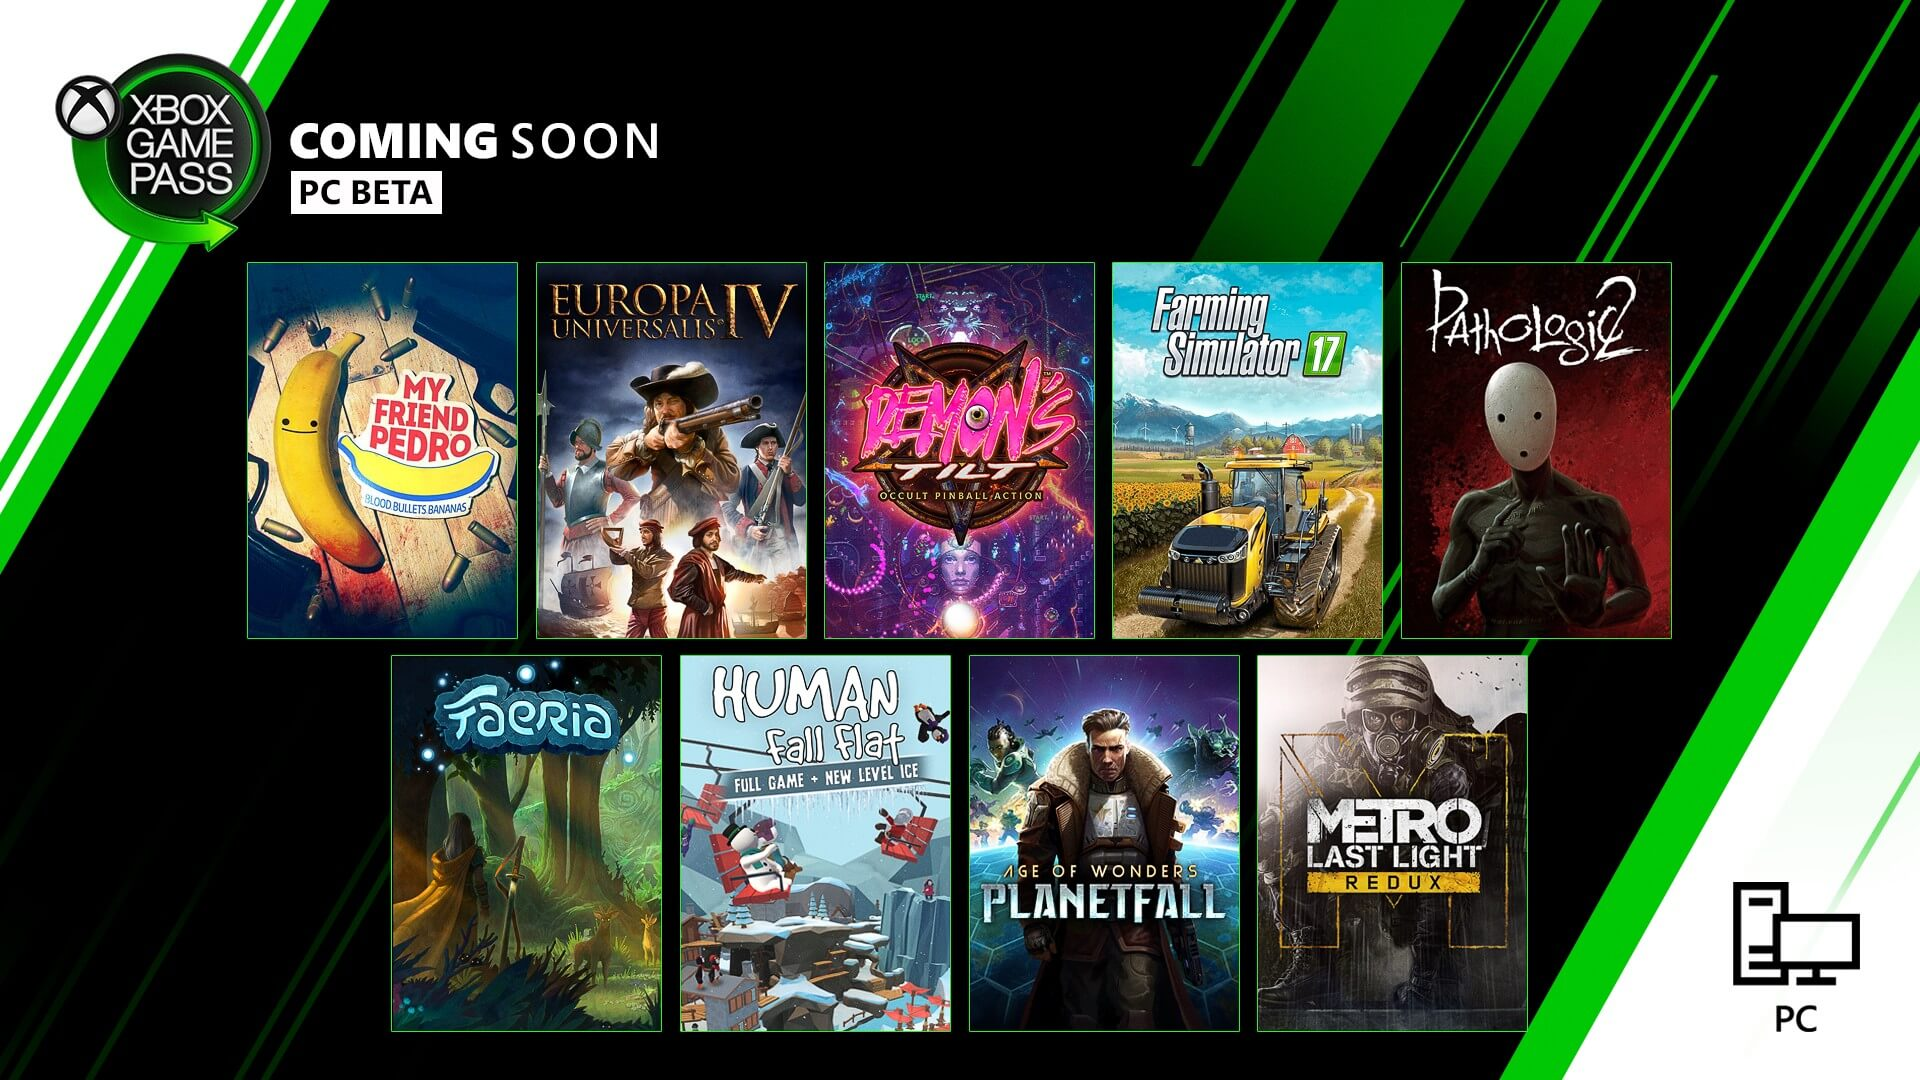 Farming Simulator 17, My Friend Pedro among 9 games coming soon to Xbox Game Pass for PC